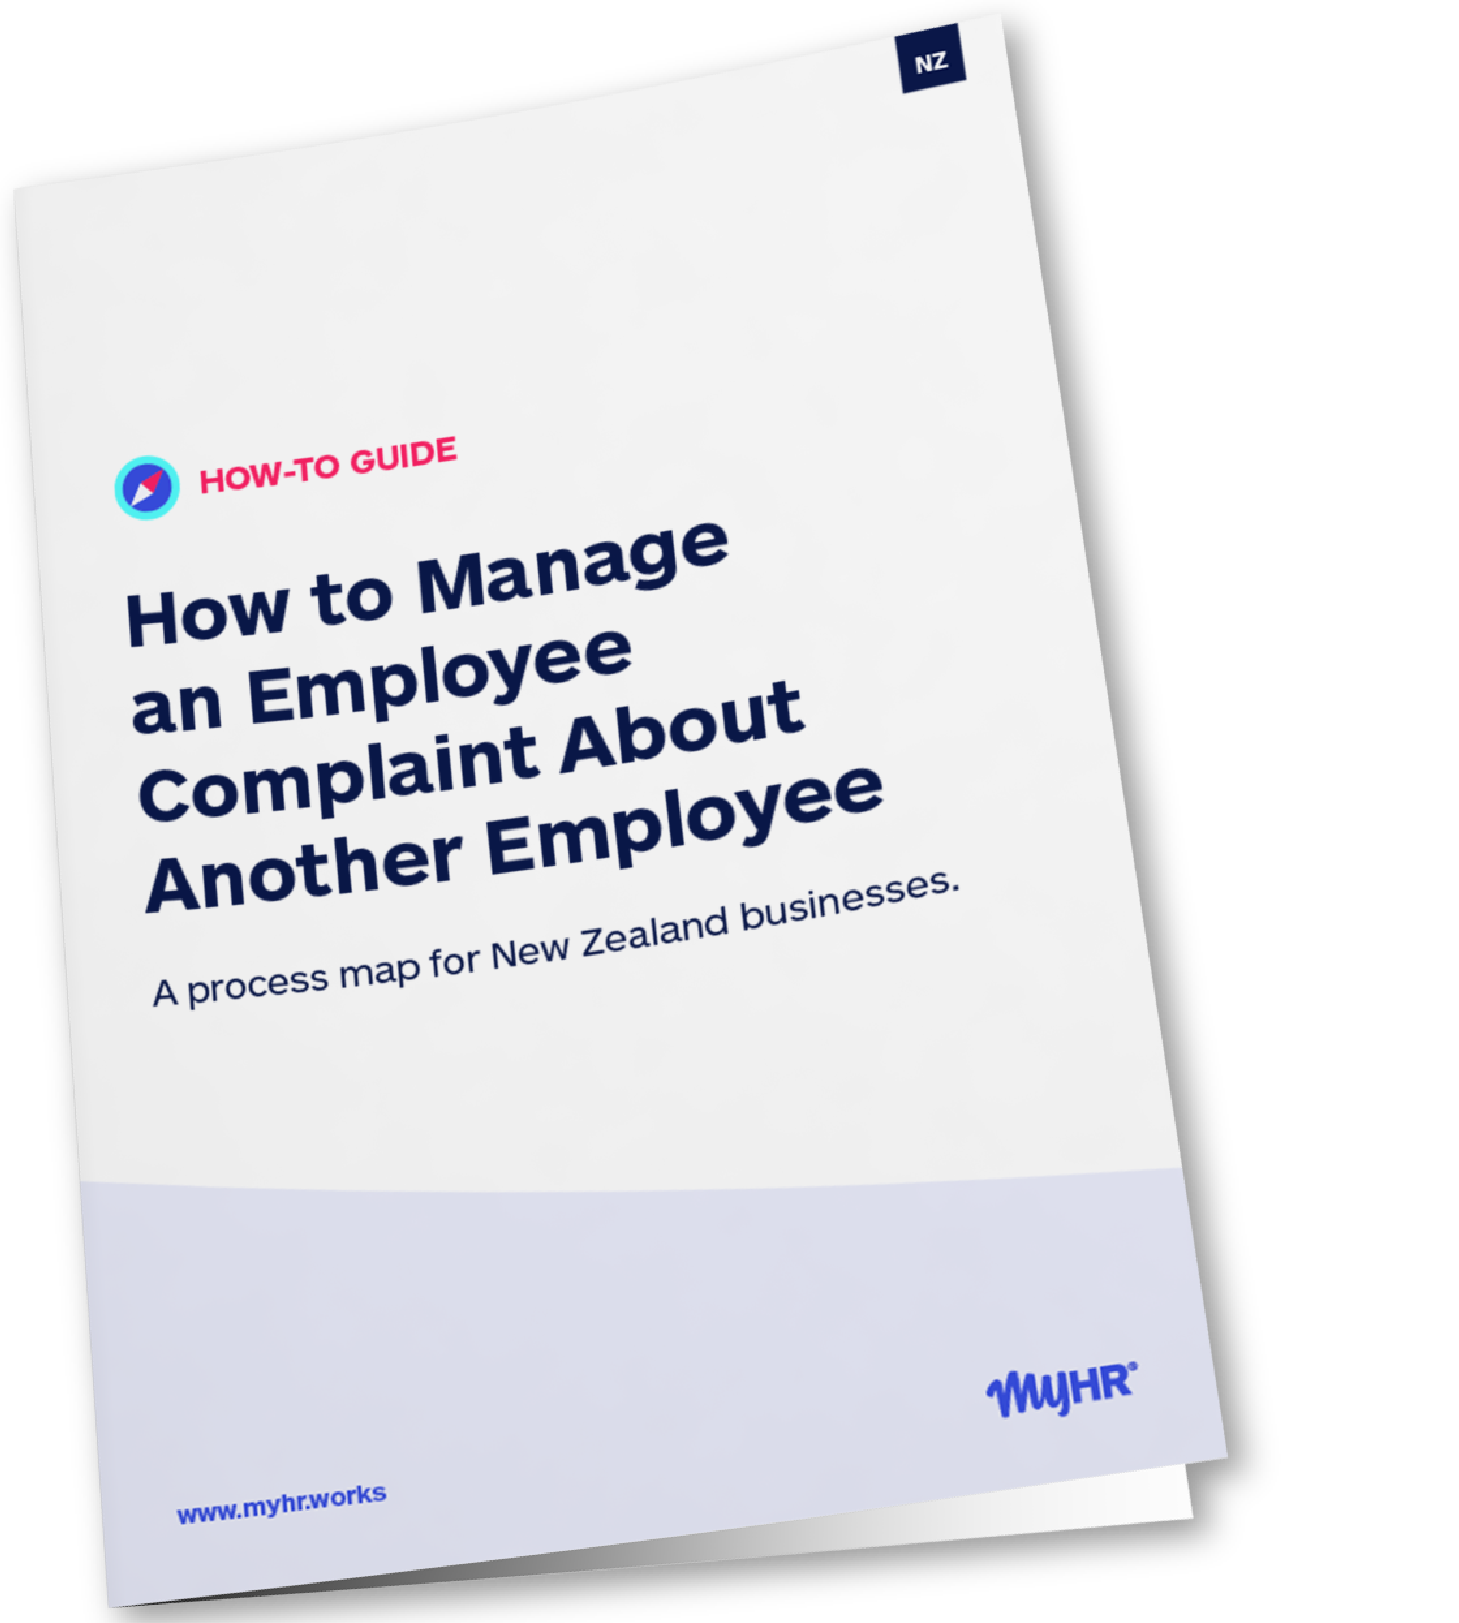 MyHR_NZ How to Manage an Employee Complaint About Another Employee Mockup